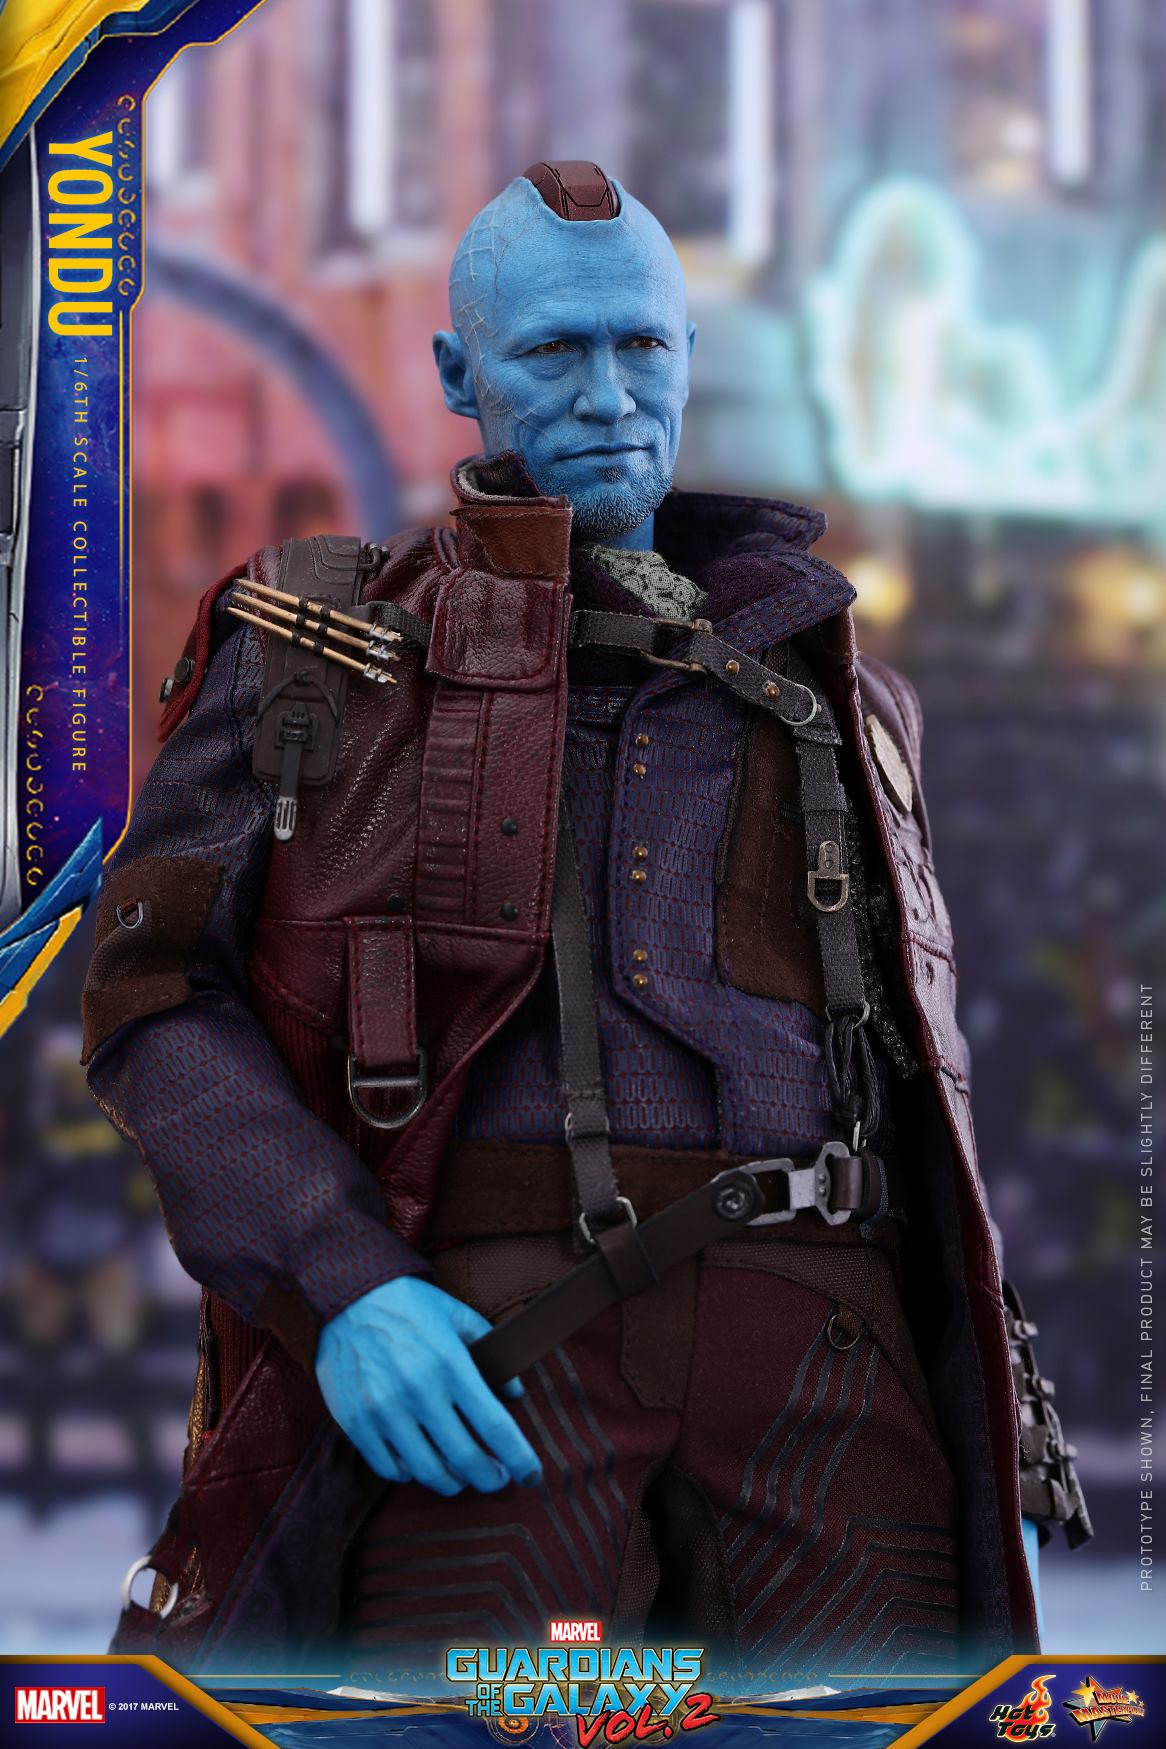 Hot toys guardians of the galaxy vol 2 yondu figures for Galaxy toys